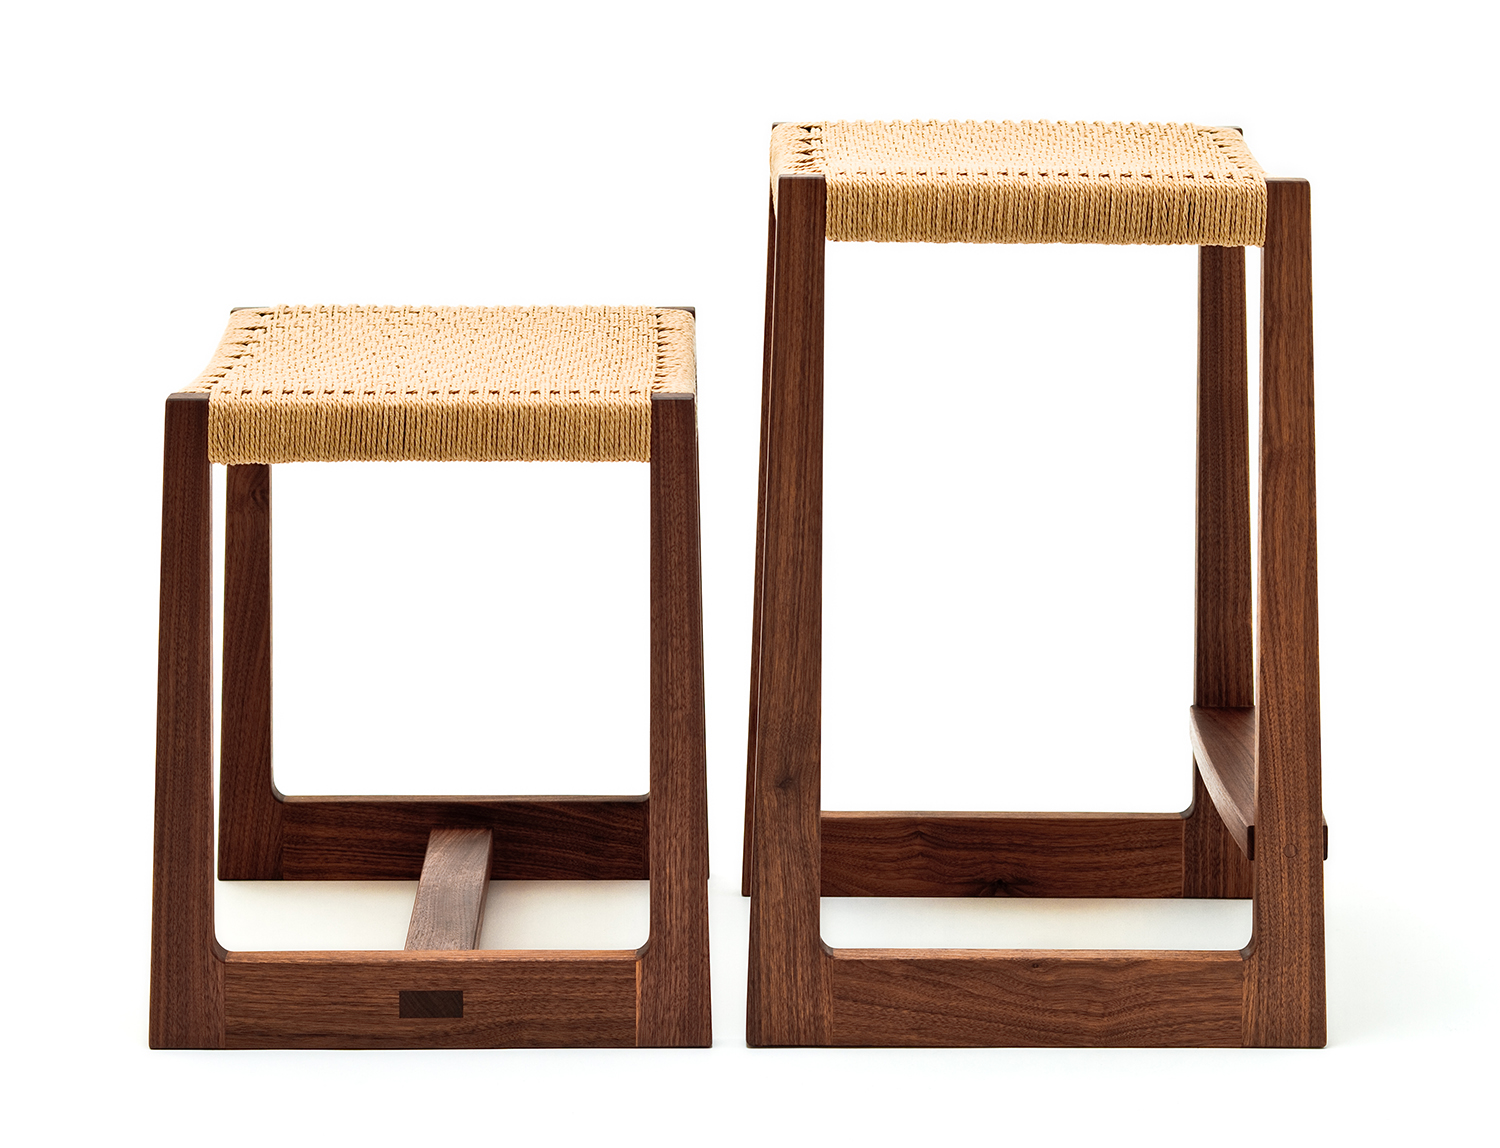 Low and tall Matteawan stools in walnut and natural Danish cord